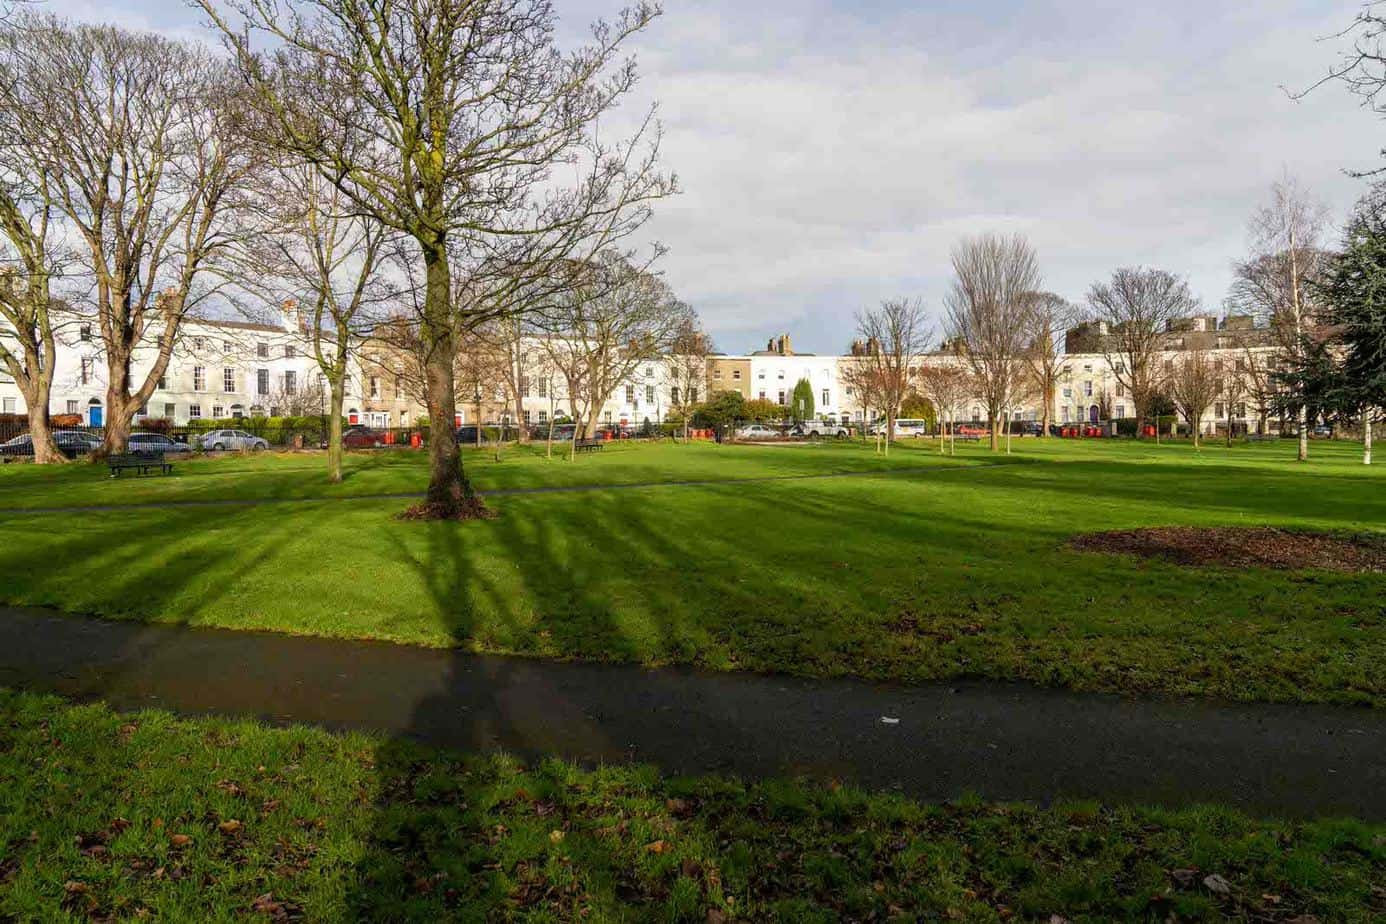 MY-FIRST-TIME-TO-VISIT-BRAM-STOKER-PARK-MARINO-CRESCENT-PARK-158886-1